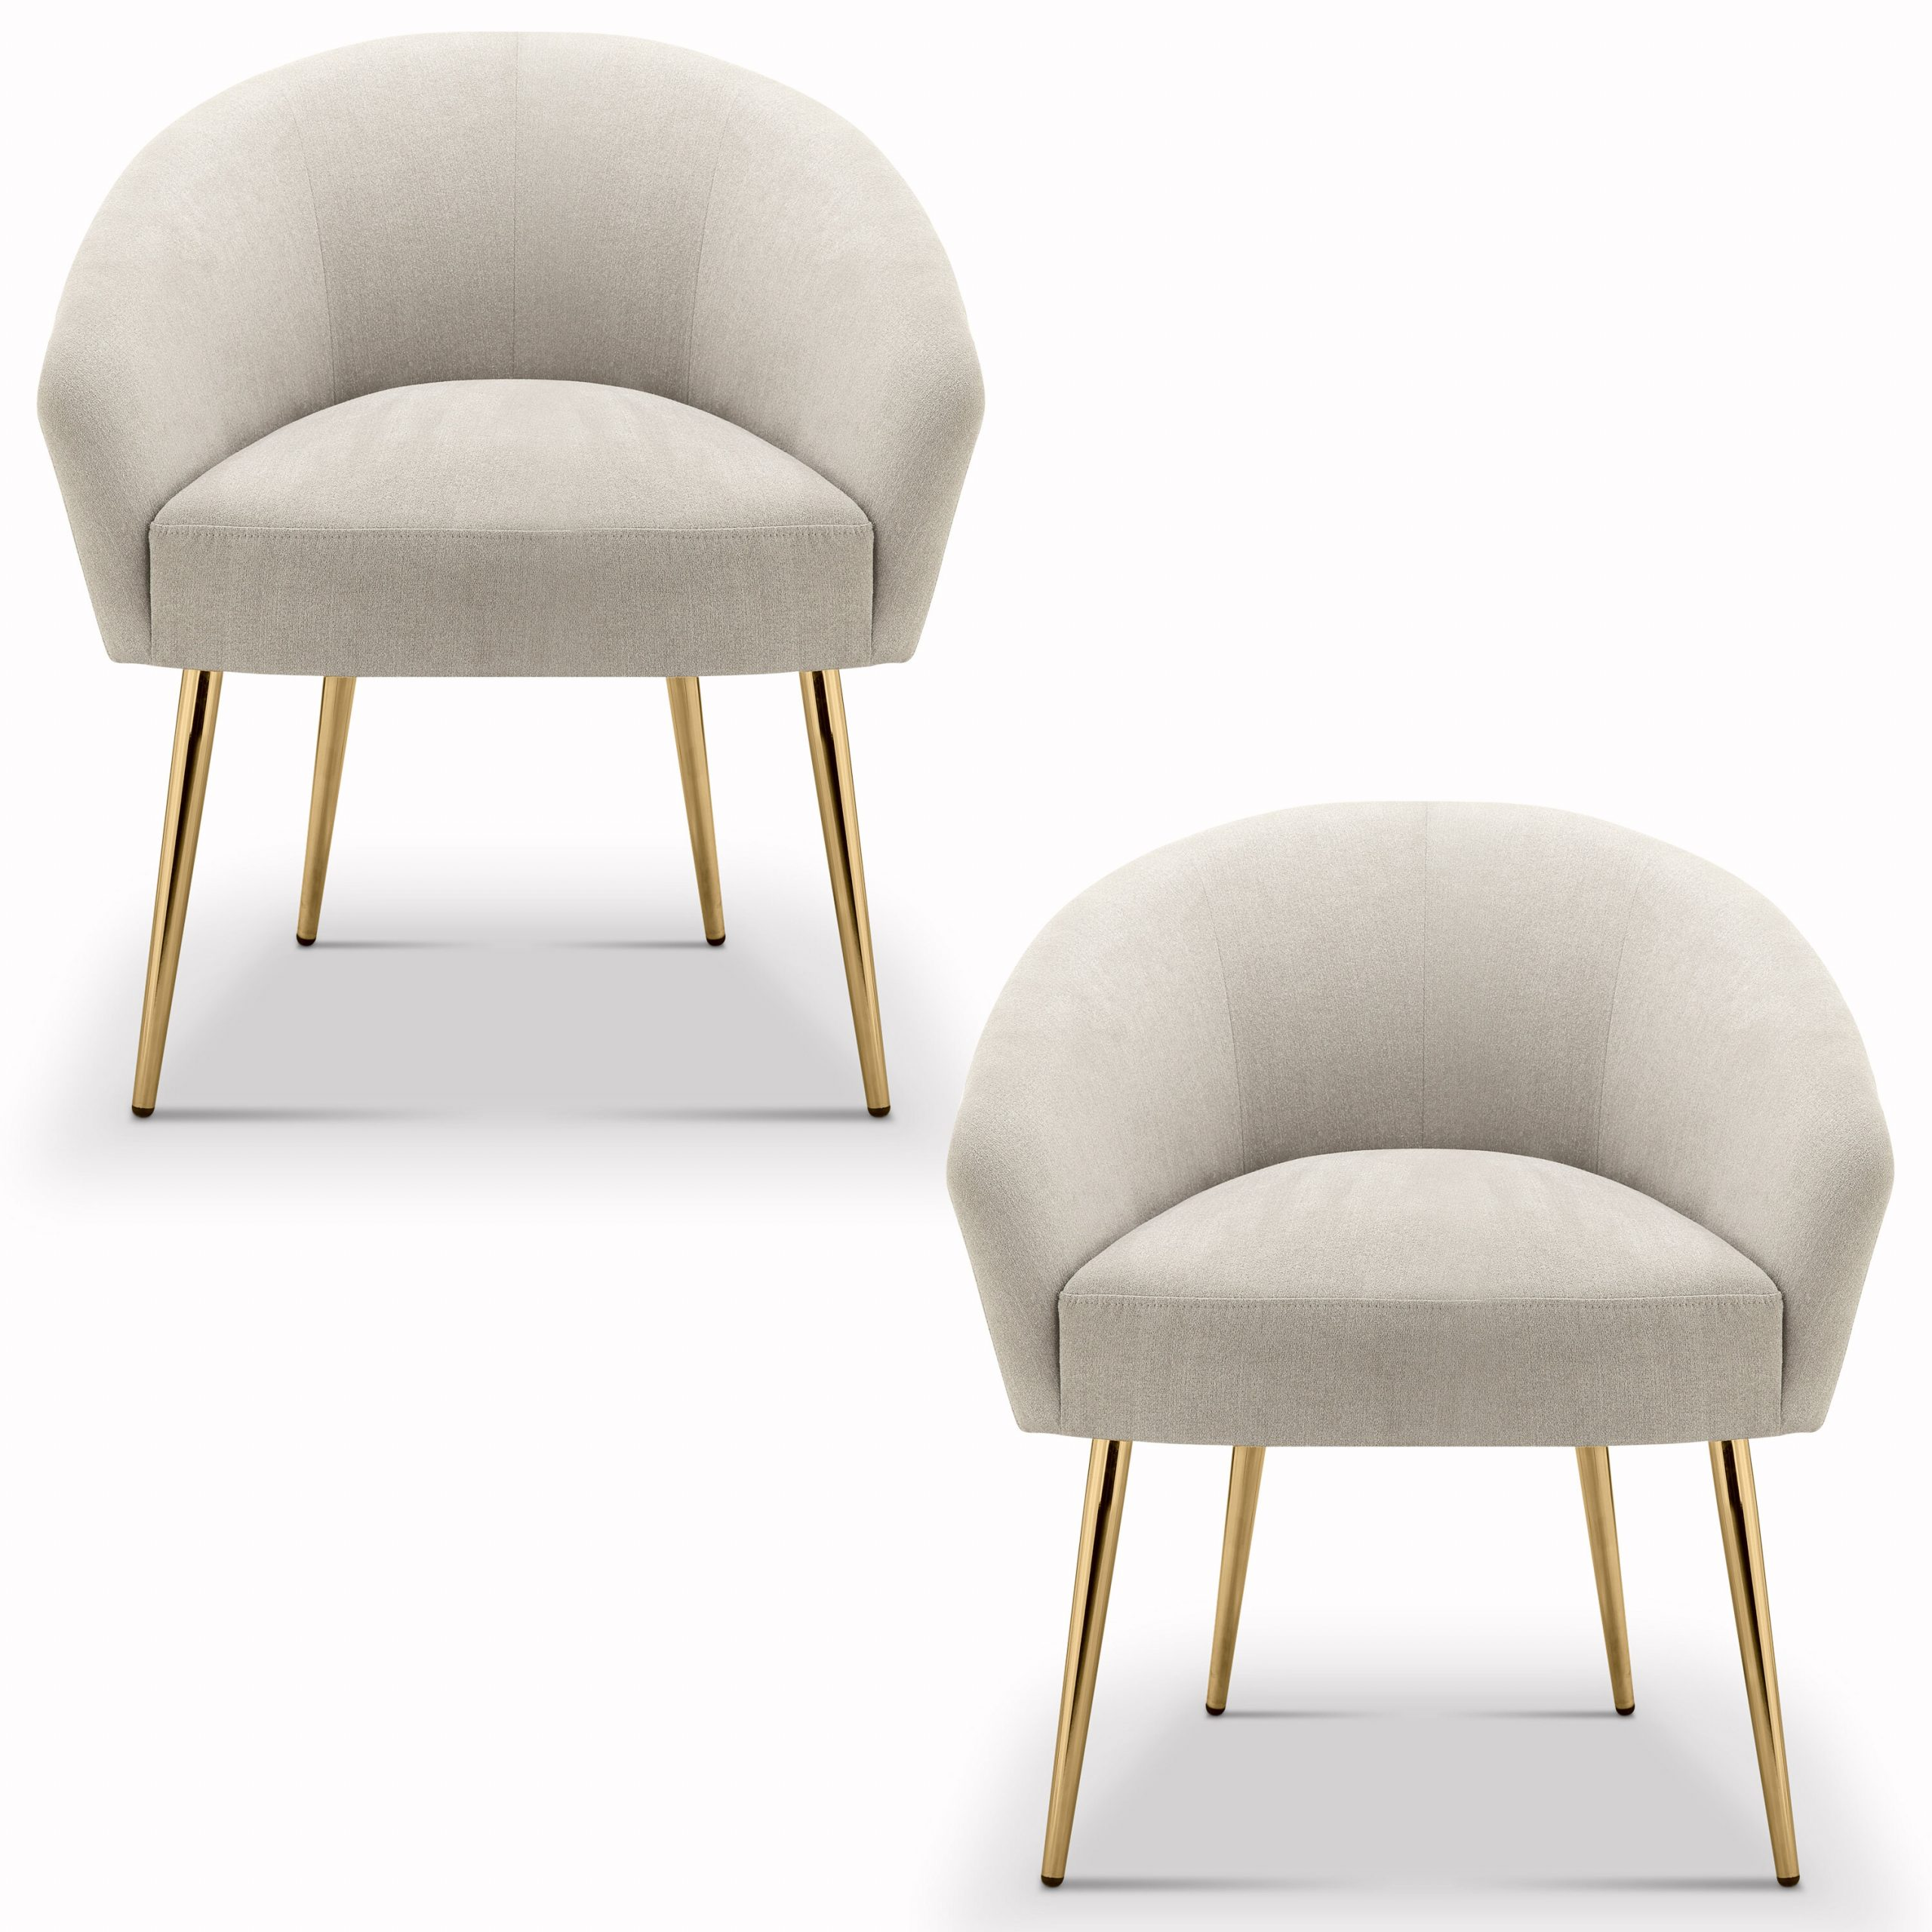 Mcbroom Celeste Armchair Within Focht Armchairs (View 8 of 15)